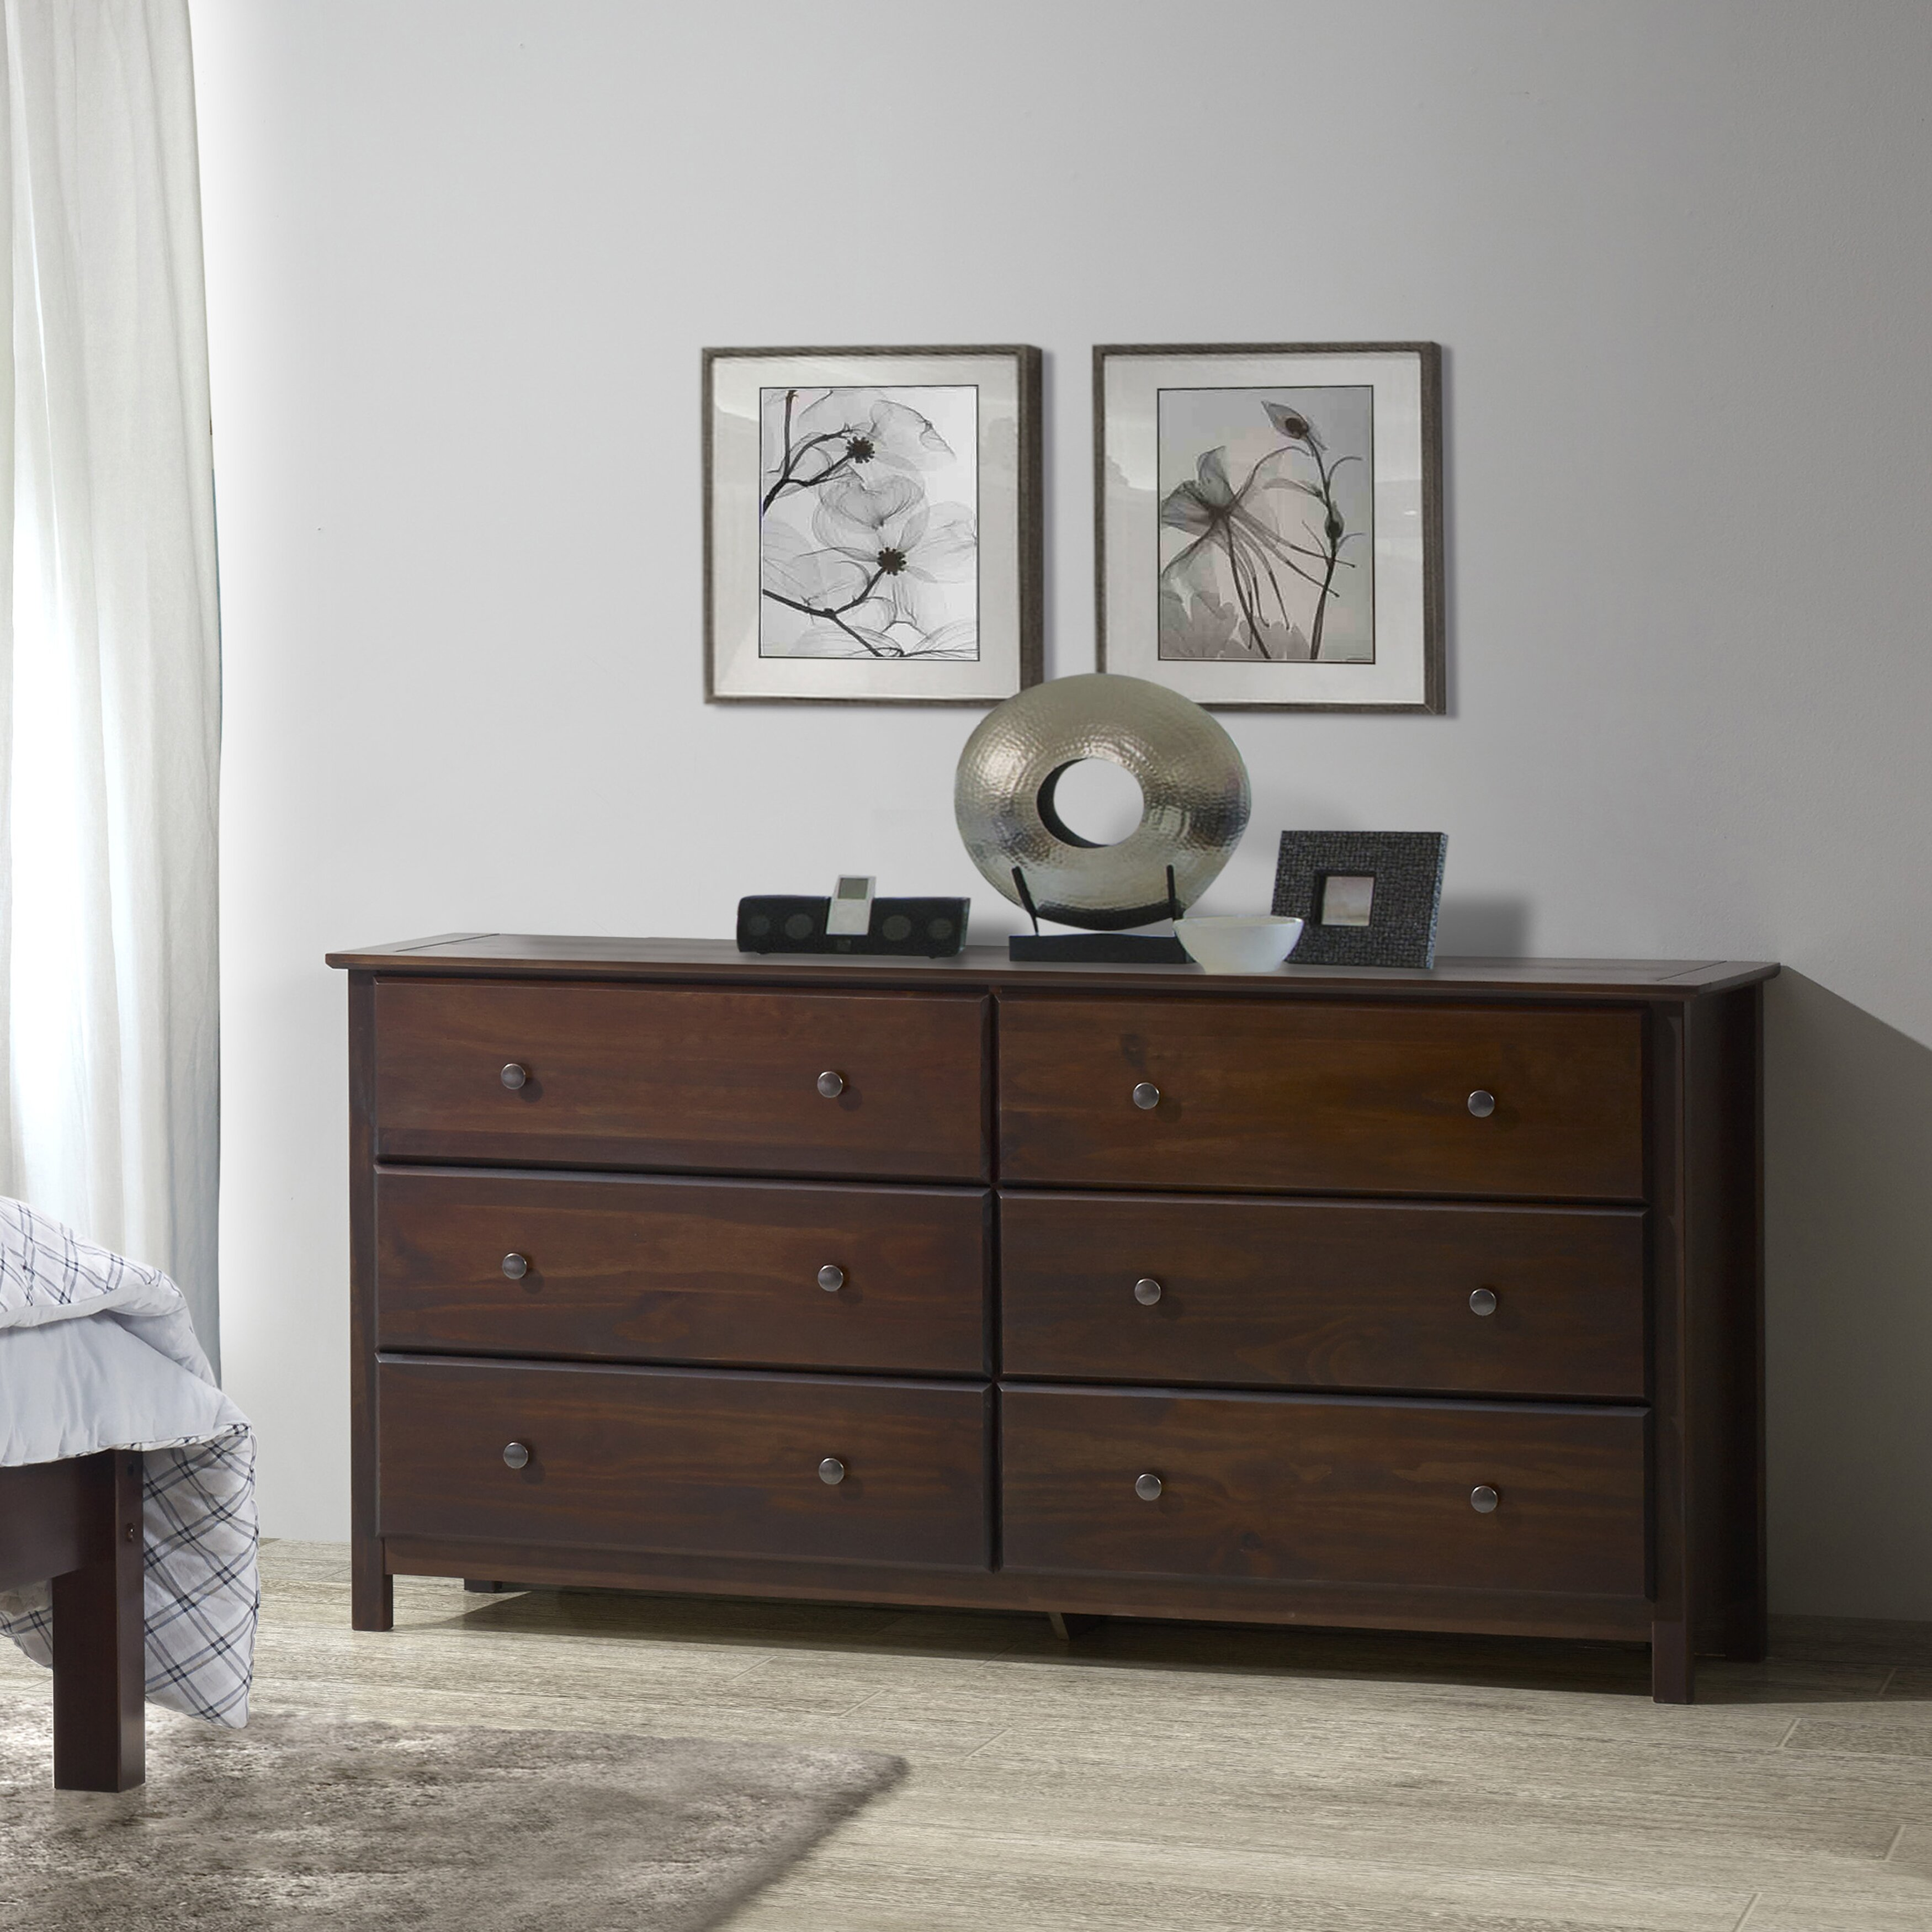 Tall Bedroom Chest Of Drawers Dressers Chest Of Drawers